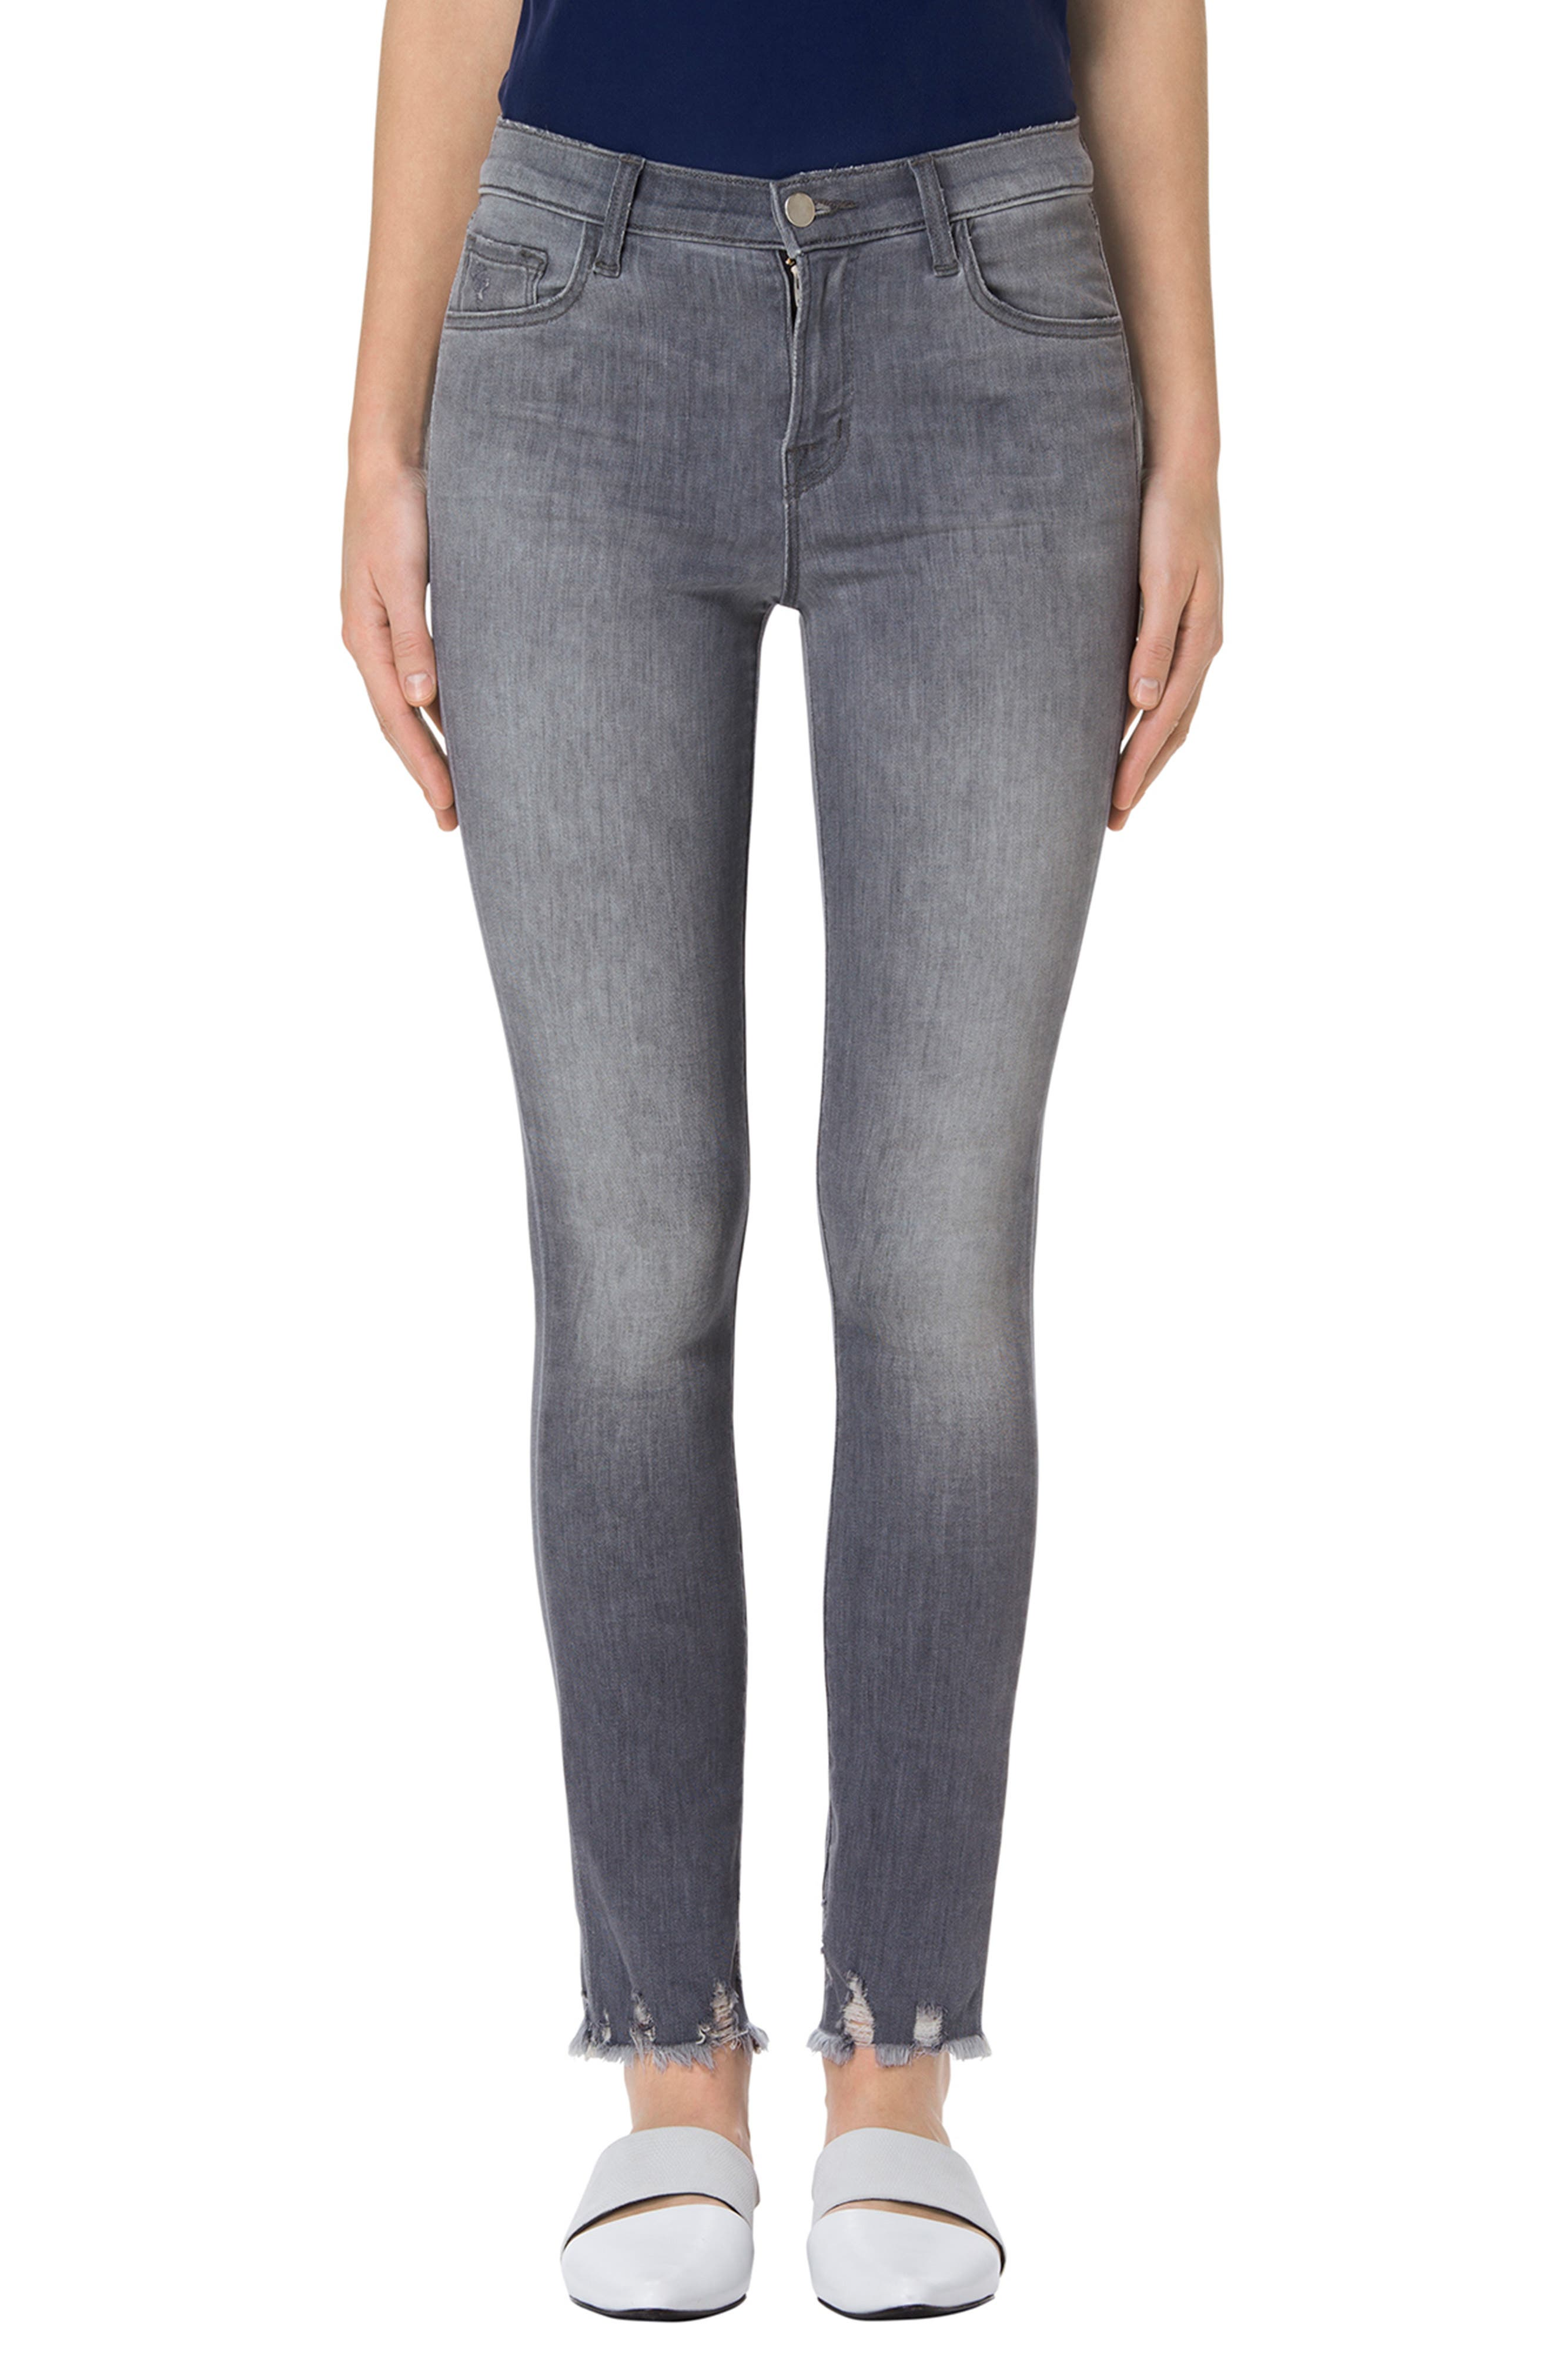 J Brand 811 Mid Rise Skinny Jeans (Provocateur)